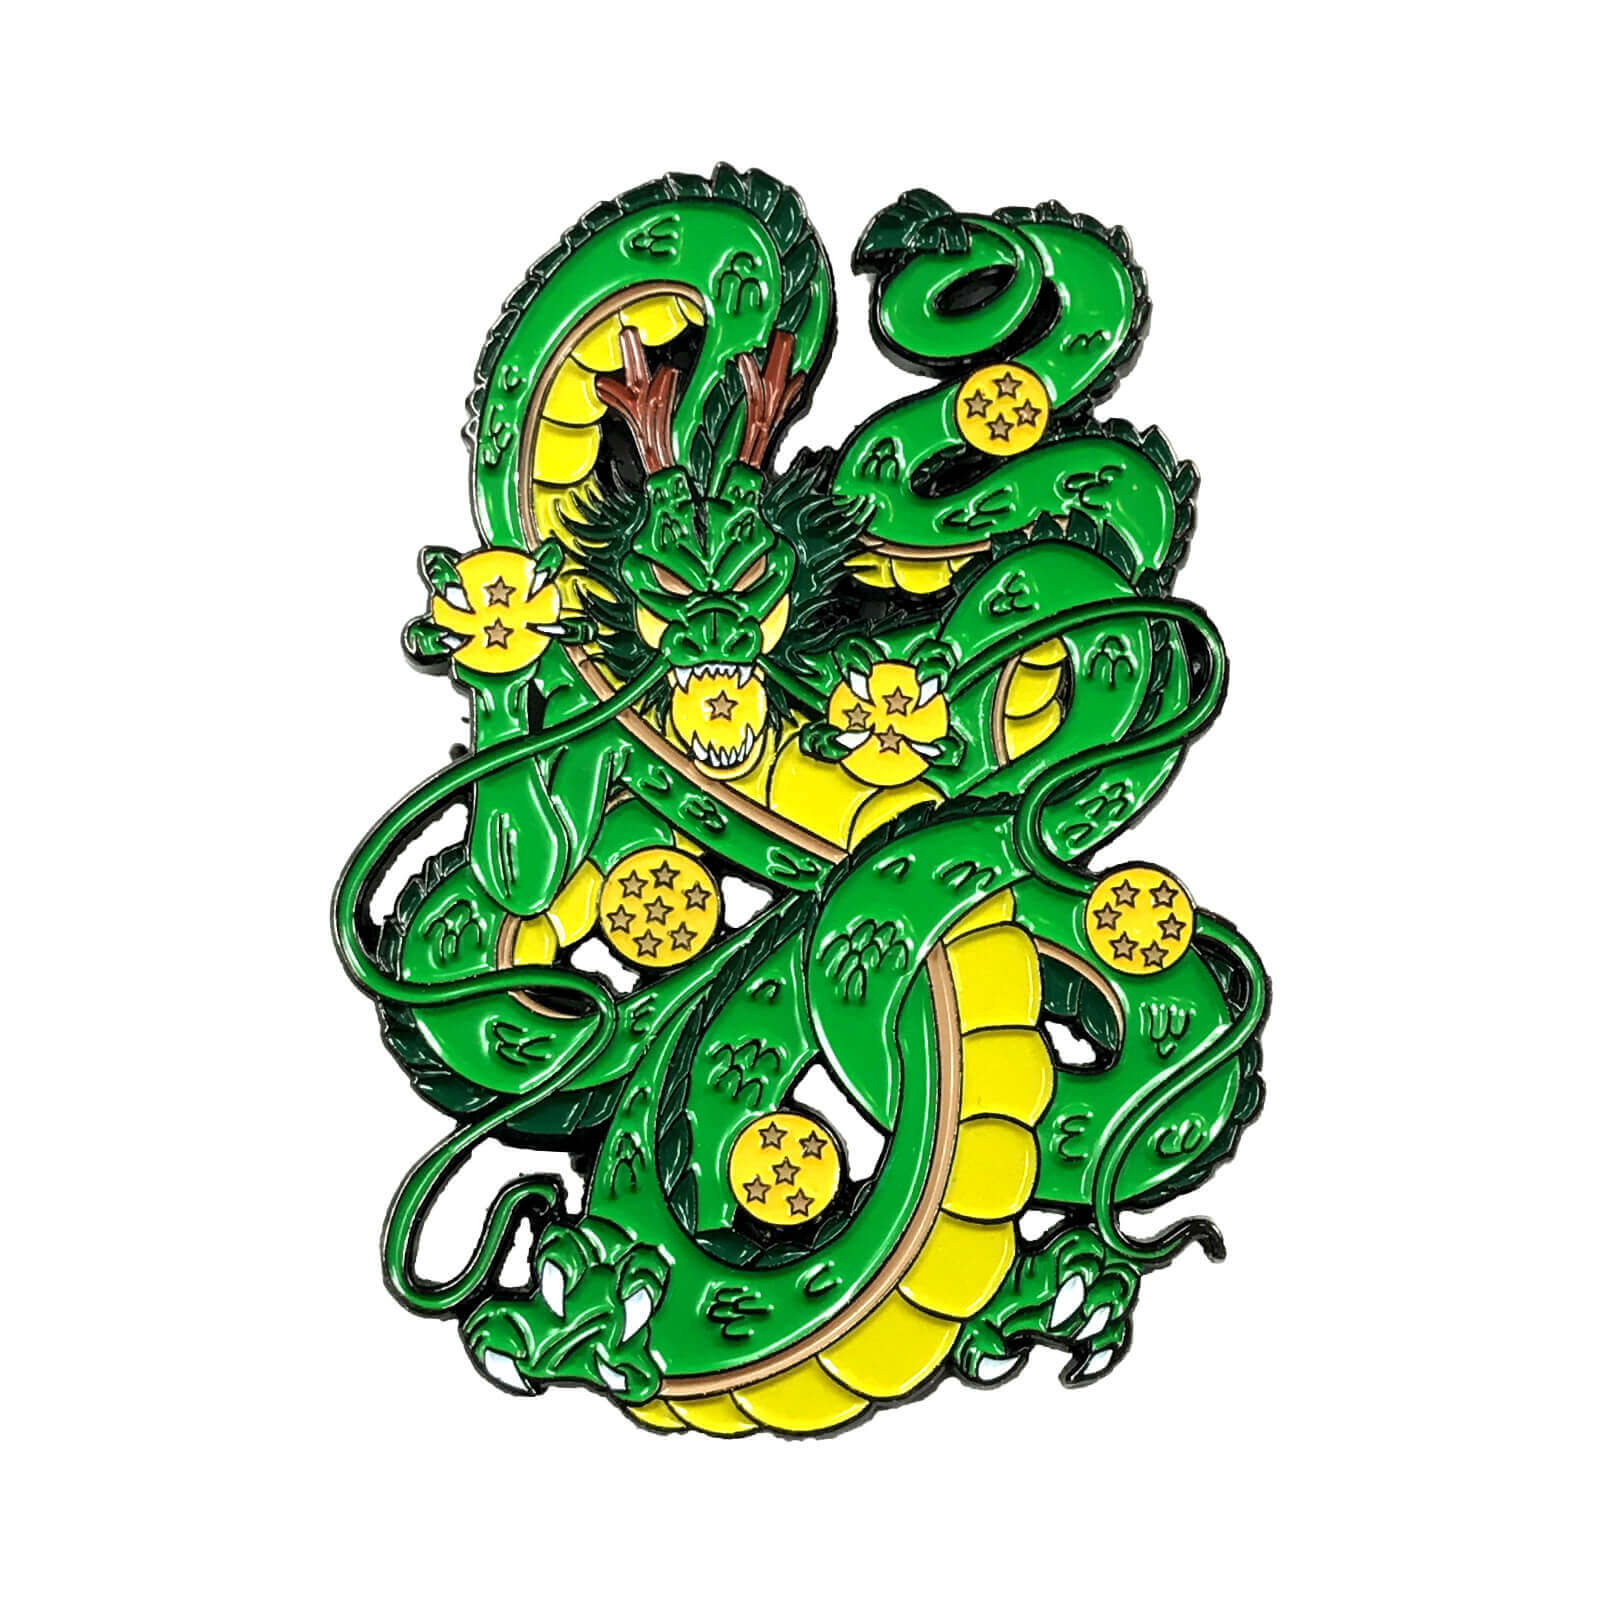 Eternal Dragon (v1 Original) Enamel Pin (2nd Ed.)